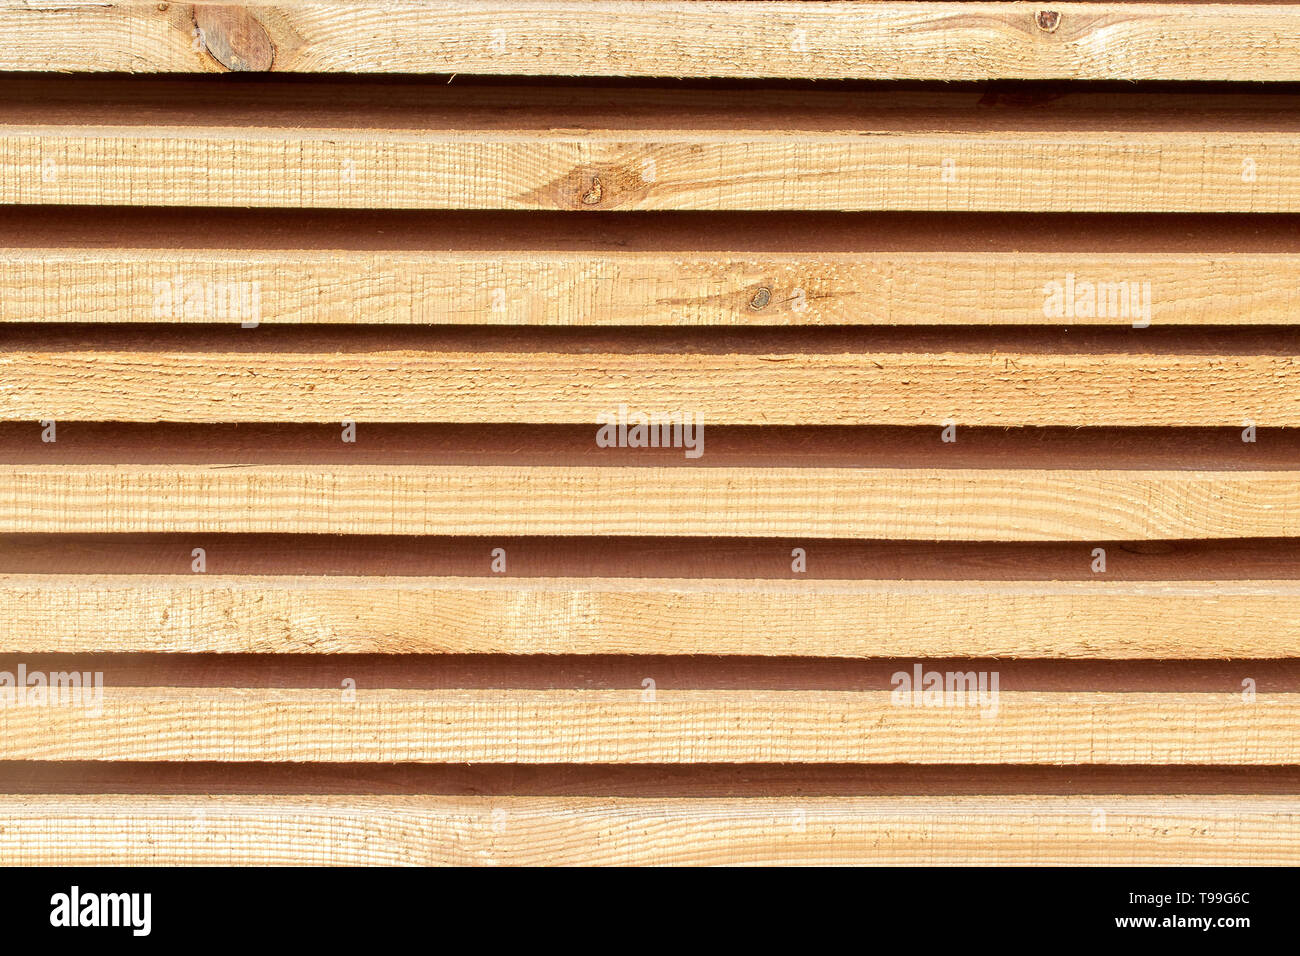 wood beams background with a clear tree structure - Stock Image